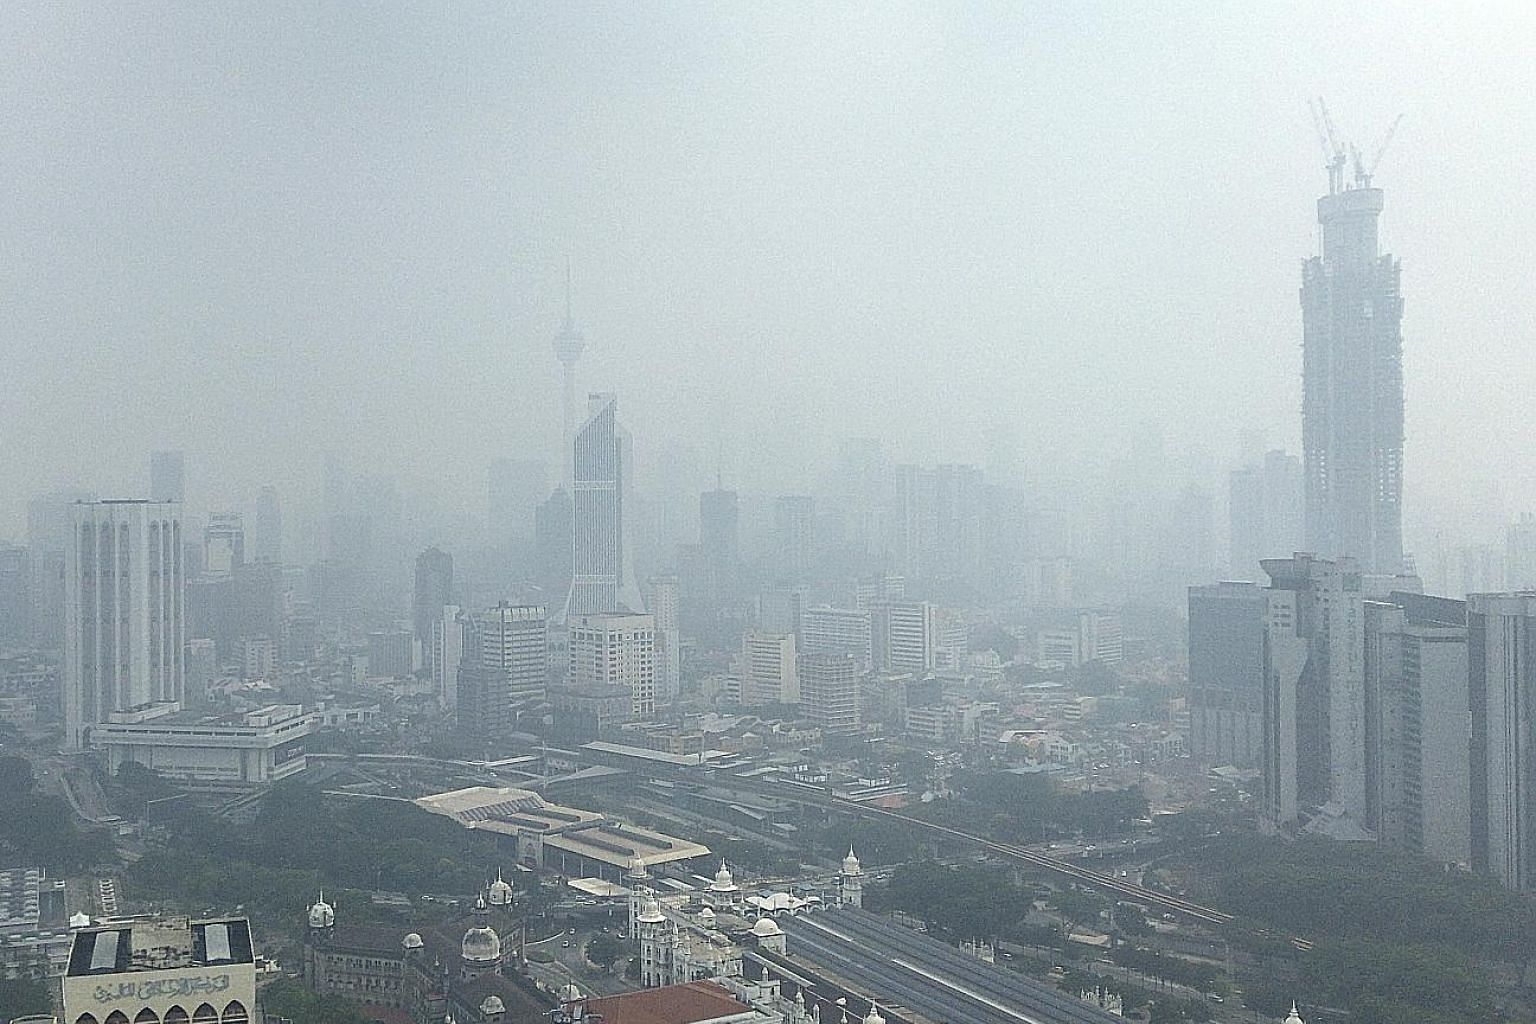 Kuala Lumpur shrouded in haze yesterday. Malaysia has lamented the lack of cooperation in solving the haze blanketing the region. PHOTO: ASSOCIATED PRESS